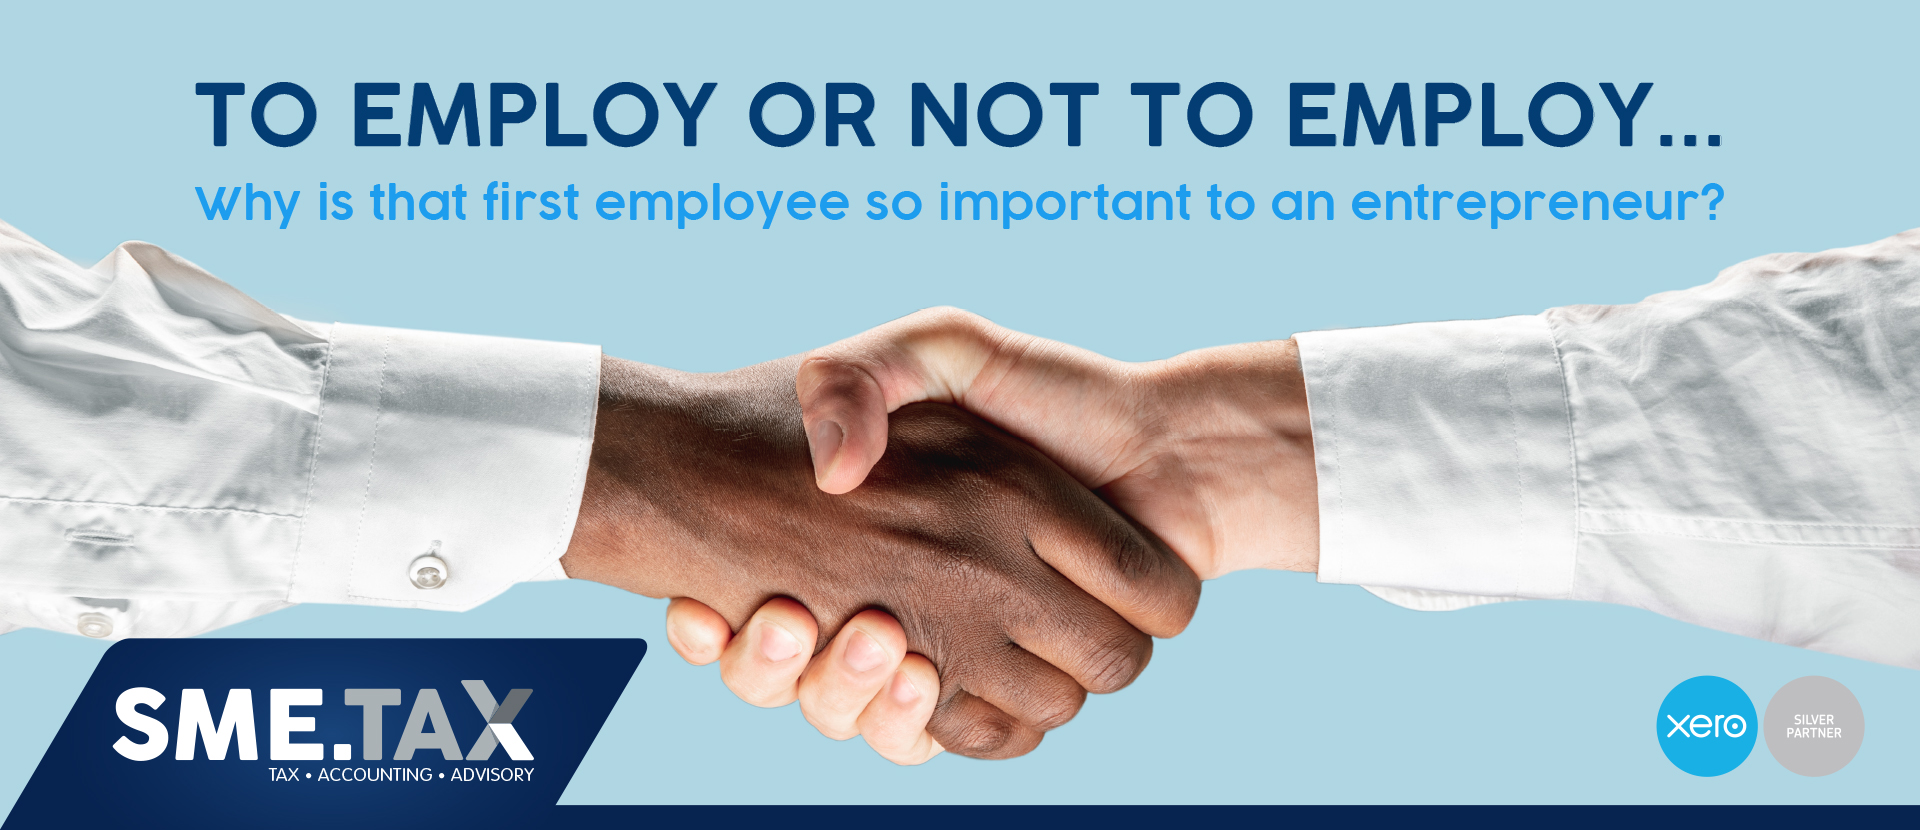 TO EMPLOY OR NOT TO EMPLOY... Why is that first employee so important to an entrepreneur? 3